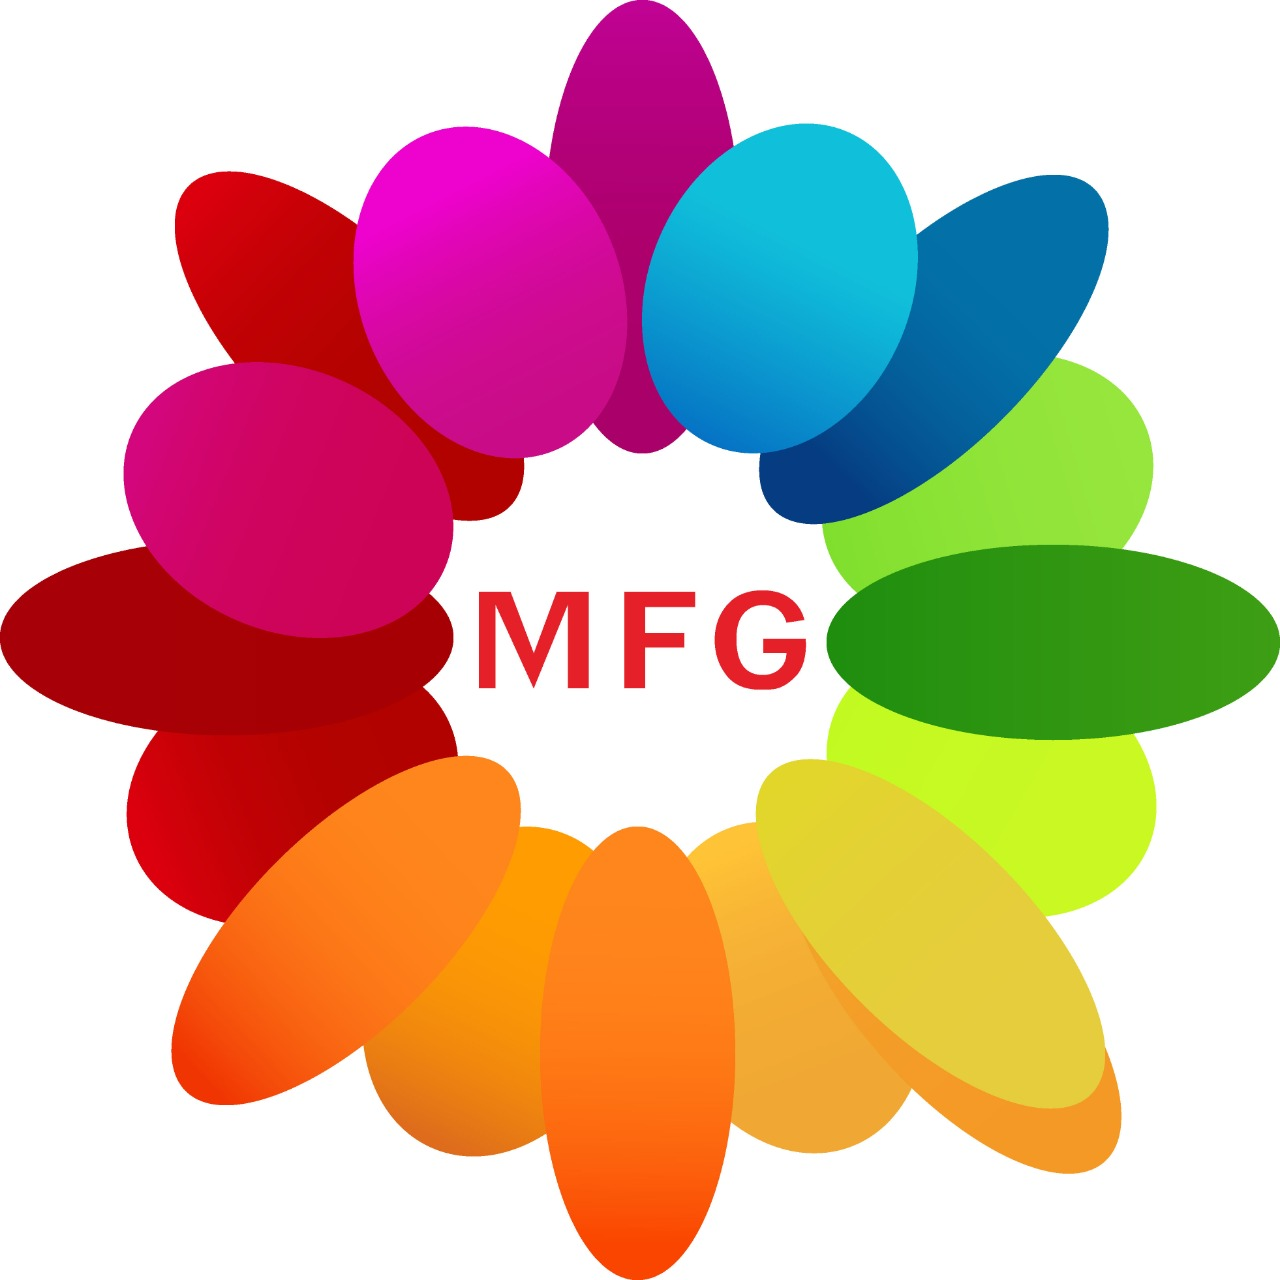 Bunch of 20 red and yellow carnations with box of 1 kg kaju katli